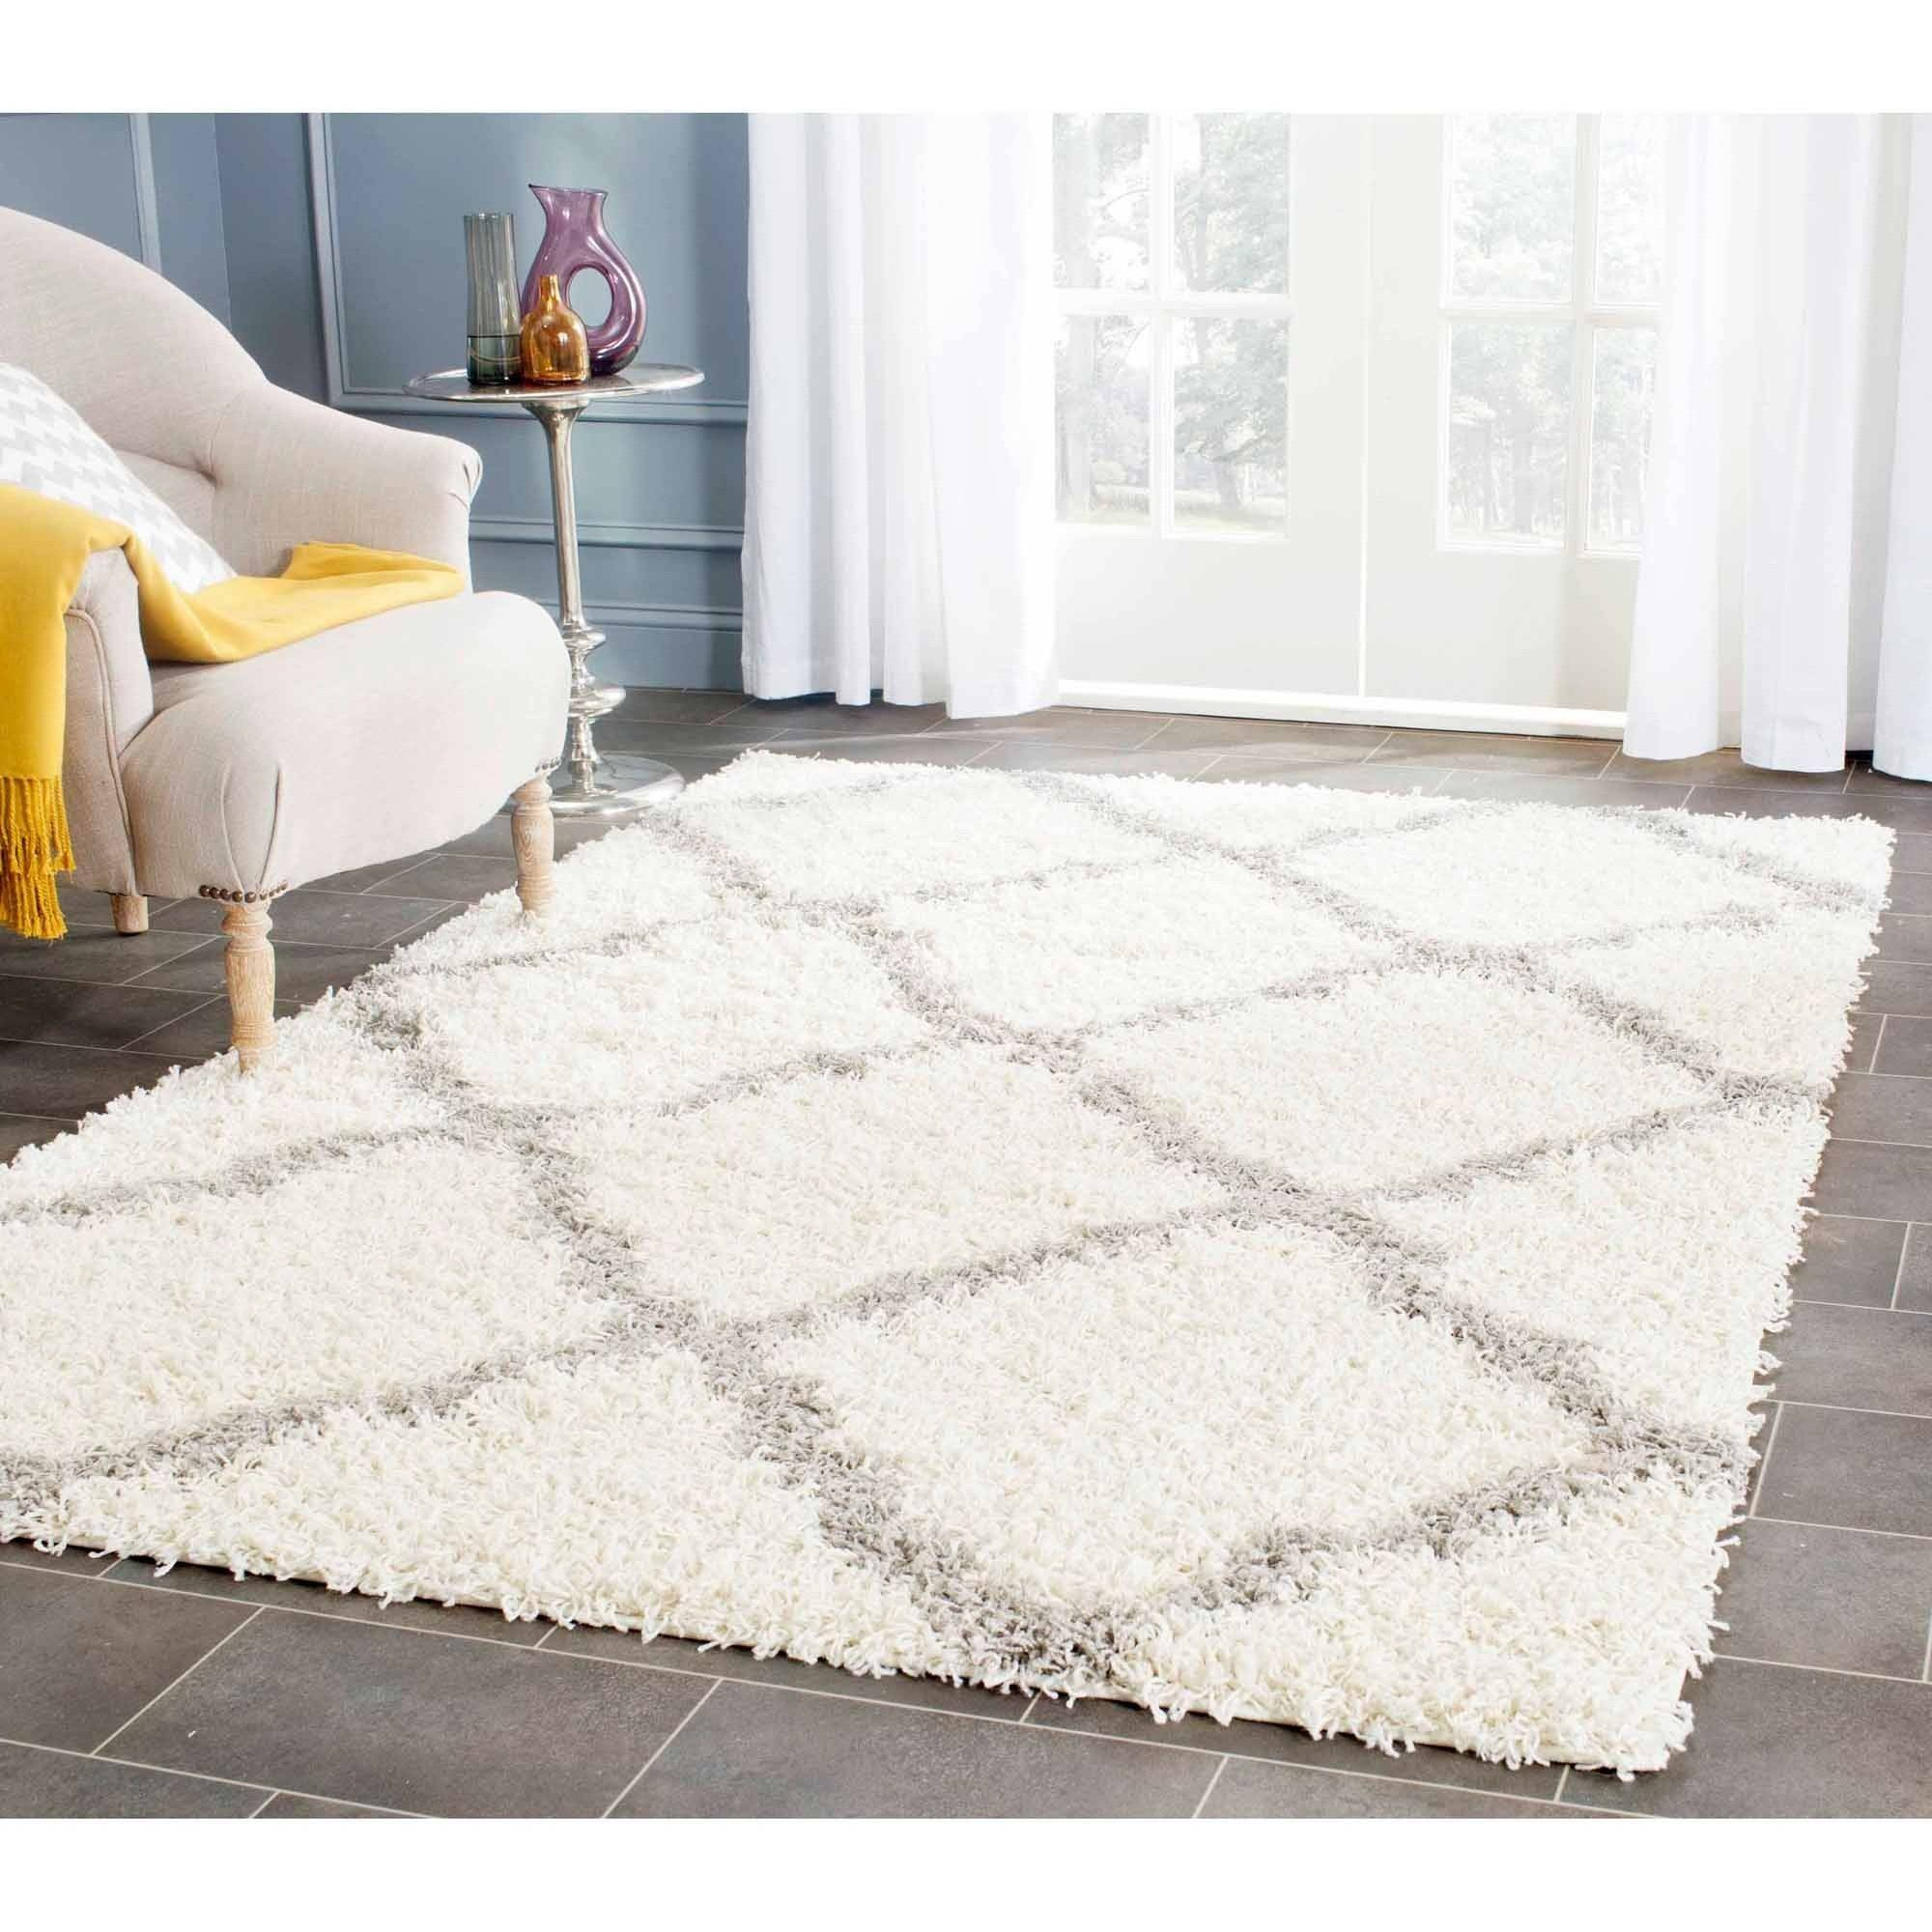 to make thick shag depot com home how ideas wondeful rugs overstock a diy outdoor area entryway rug caglesmill grey idea plush for best lowes patterned walmart